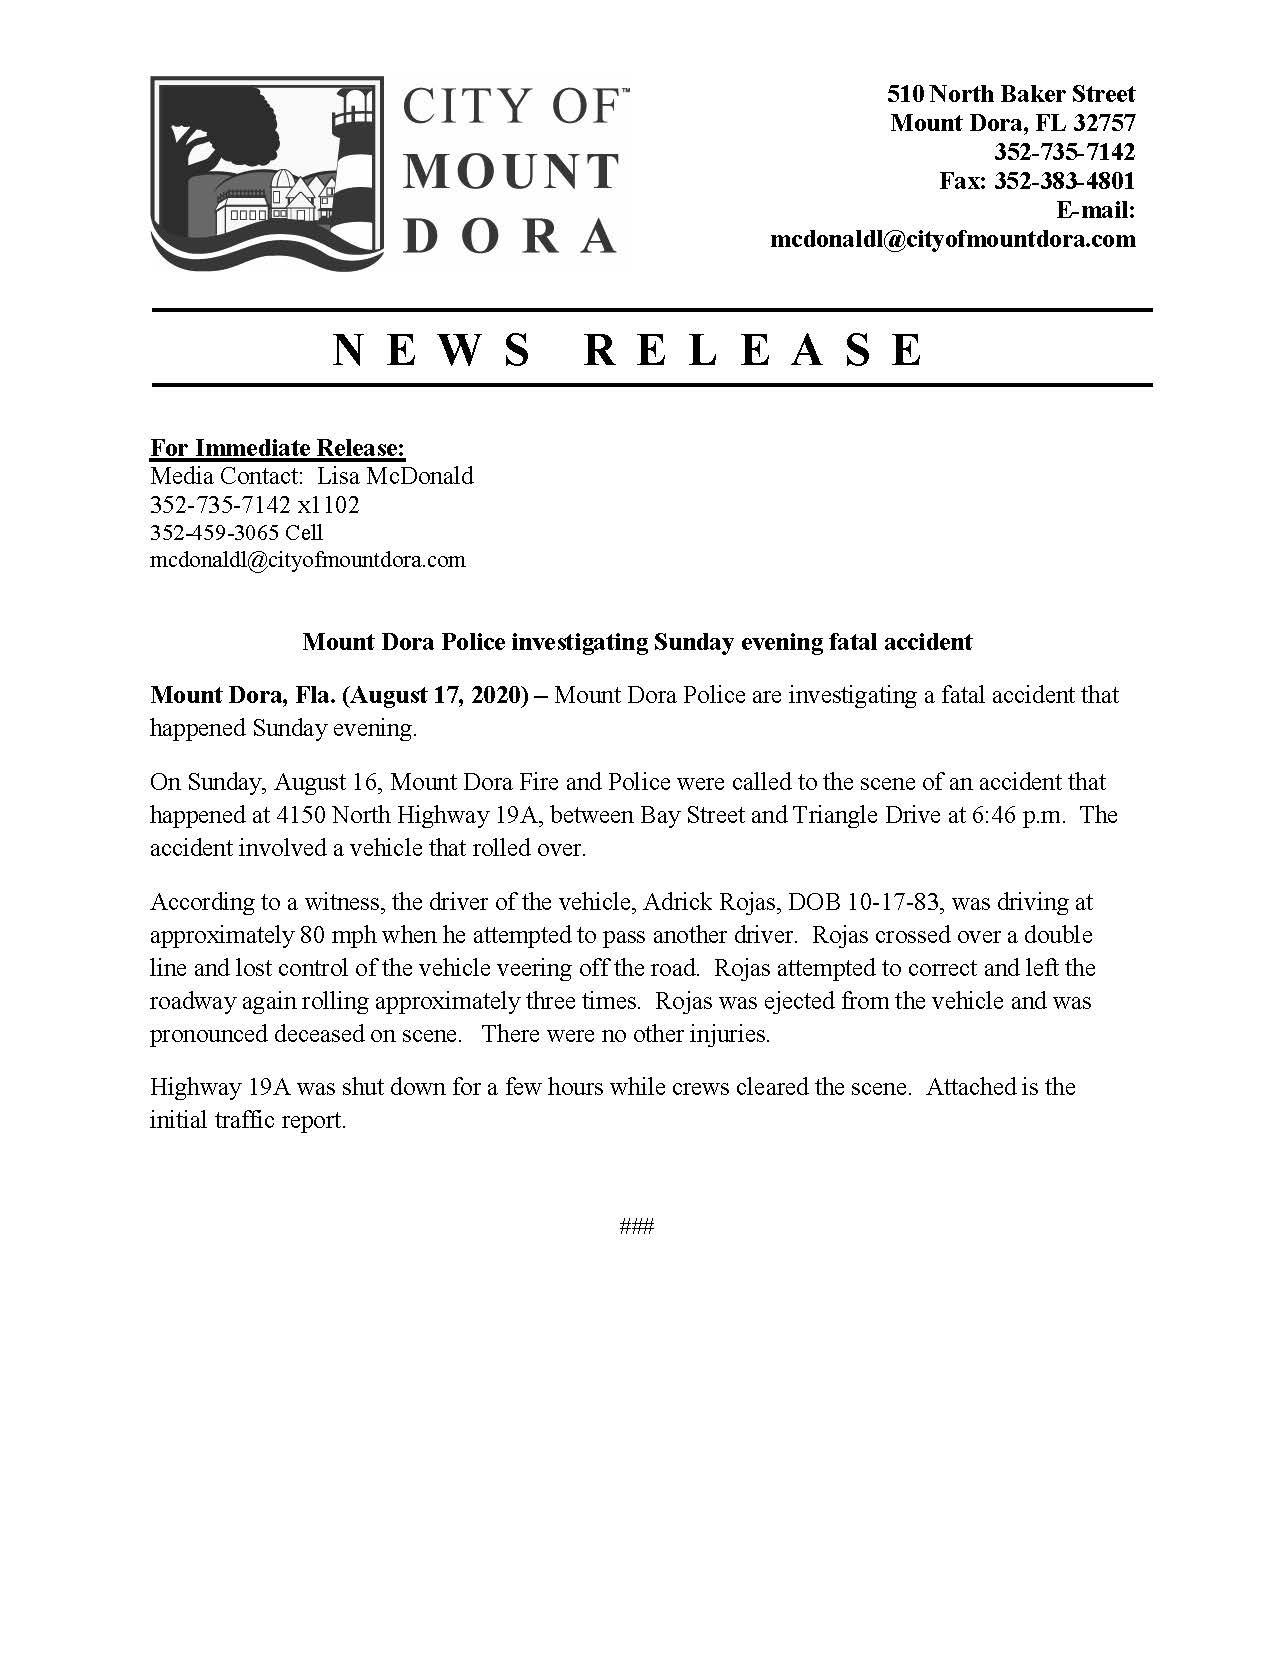 MDPD Fatal Accident Press Release